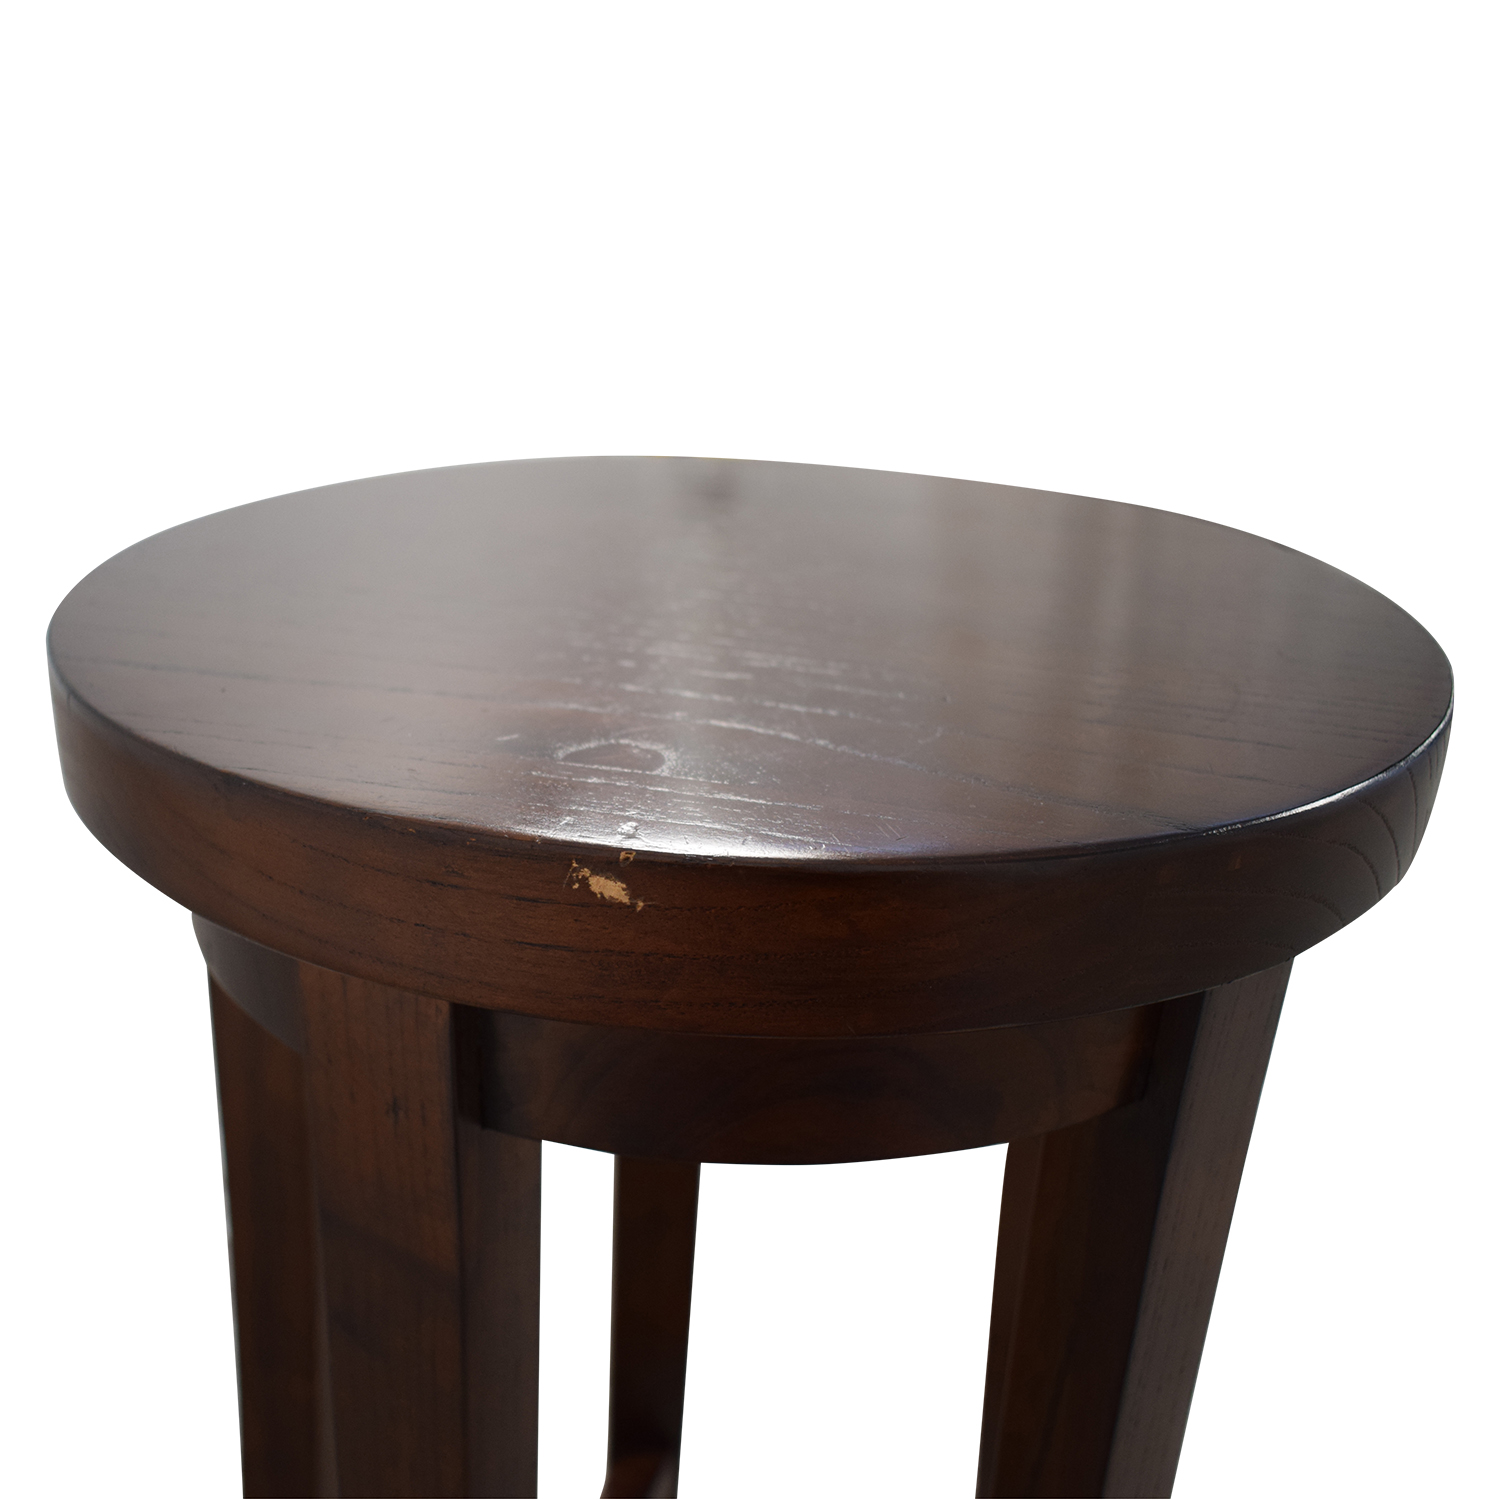 Room & Board by Maria Yee Mingshi Round End Table sale